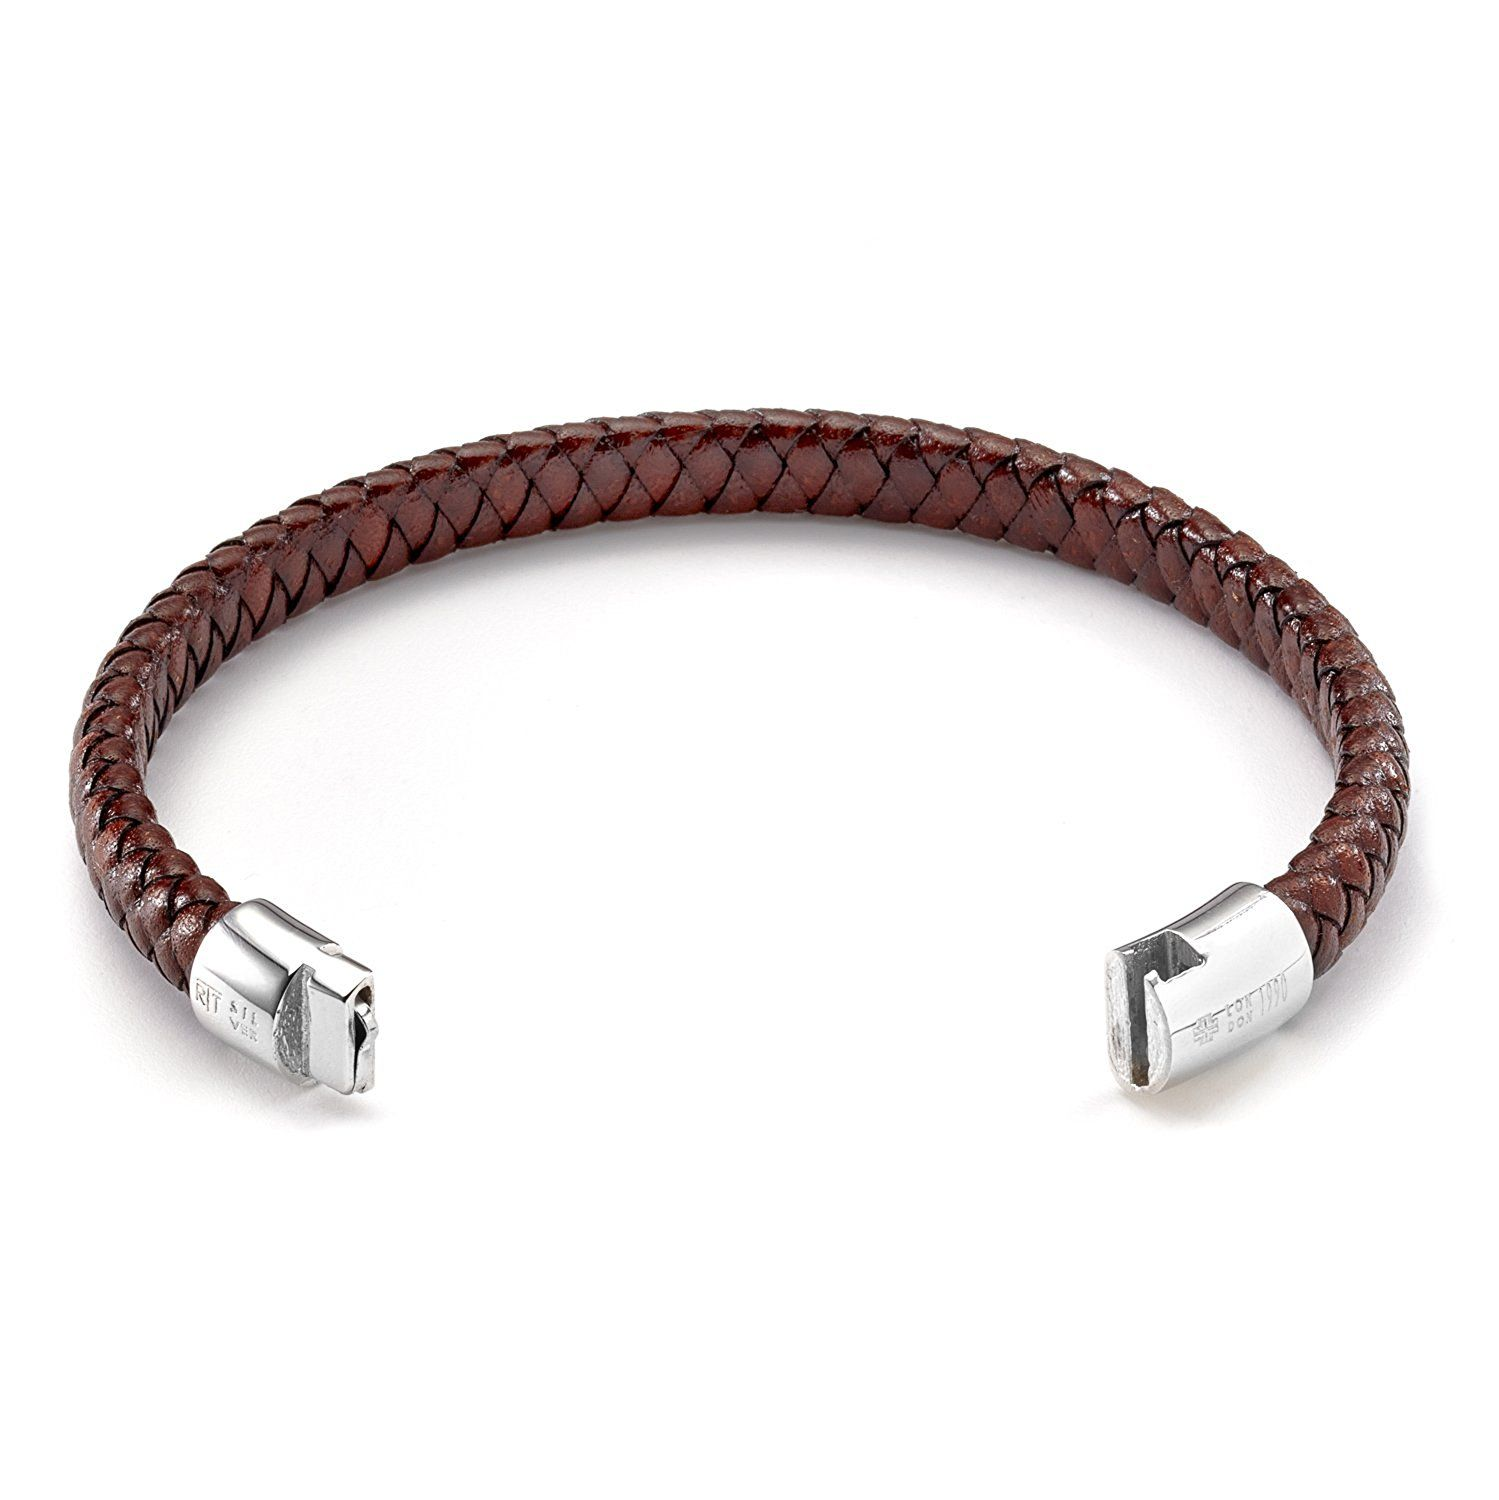 Tateossian Mens Classic Braided Leather Cobra Bracelet nmVCdVCeai